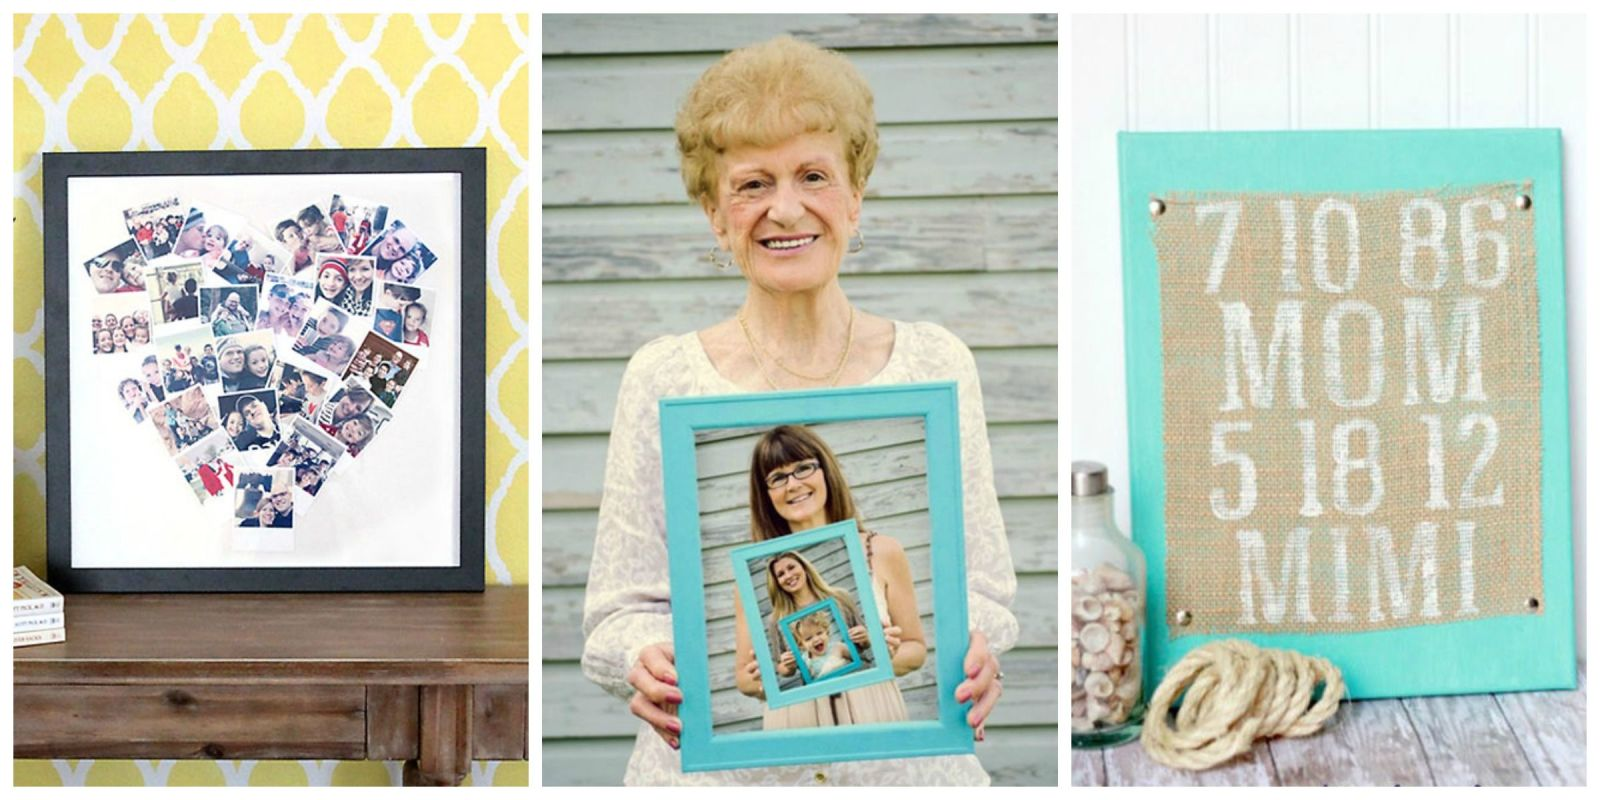 15 best mothers day gifts for grandma crafts you can make for 15 best mothers day gifts for grandma crafts you can make for grandma negle